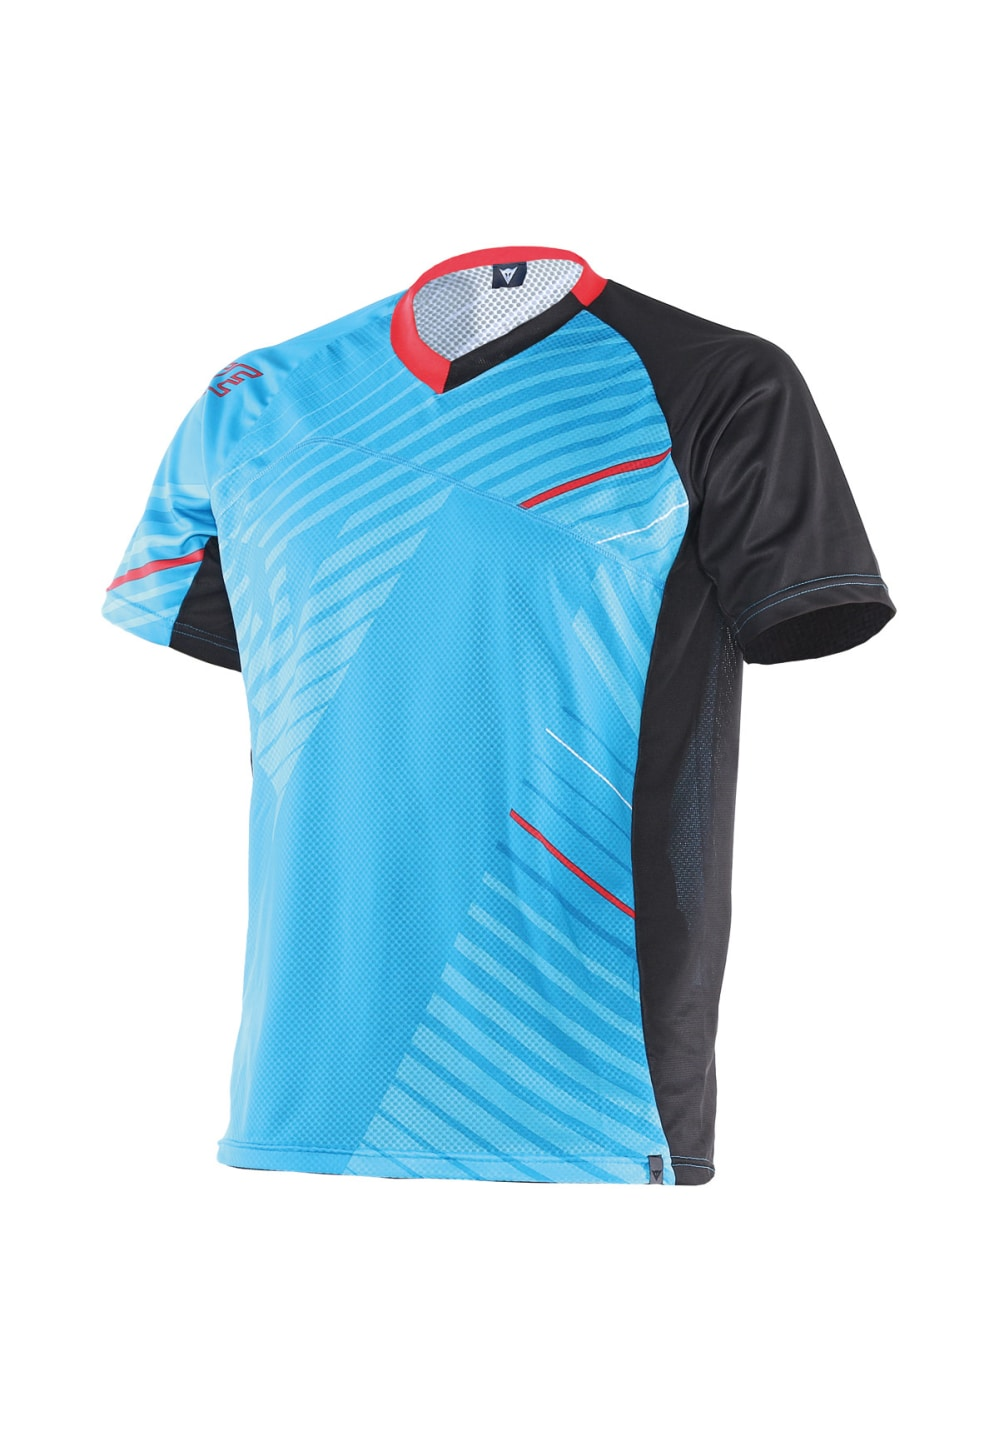 Dainese Flow Tech Jersesy Short Sleeve Radtrikots - Blau, Gr. L